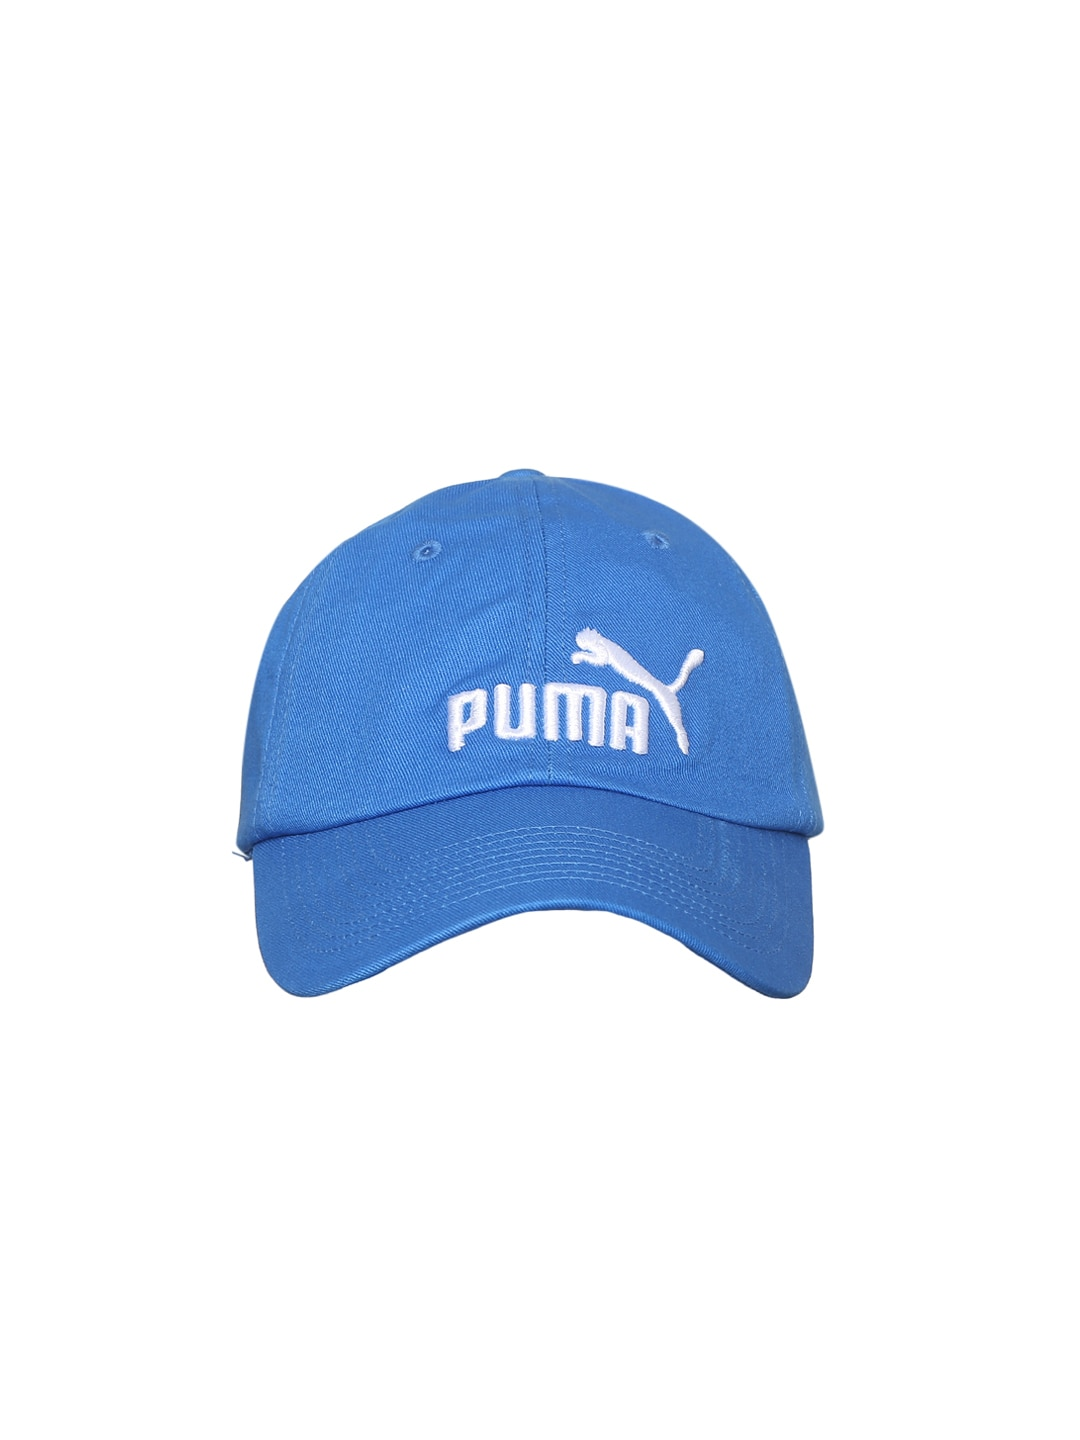 Puma Caps - Buy Puma Caps Online in India 794619b586f4